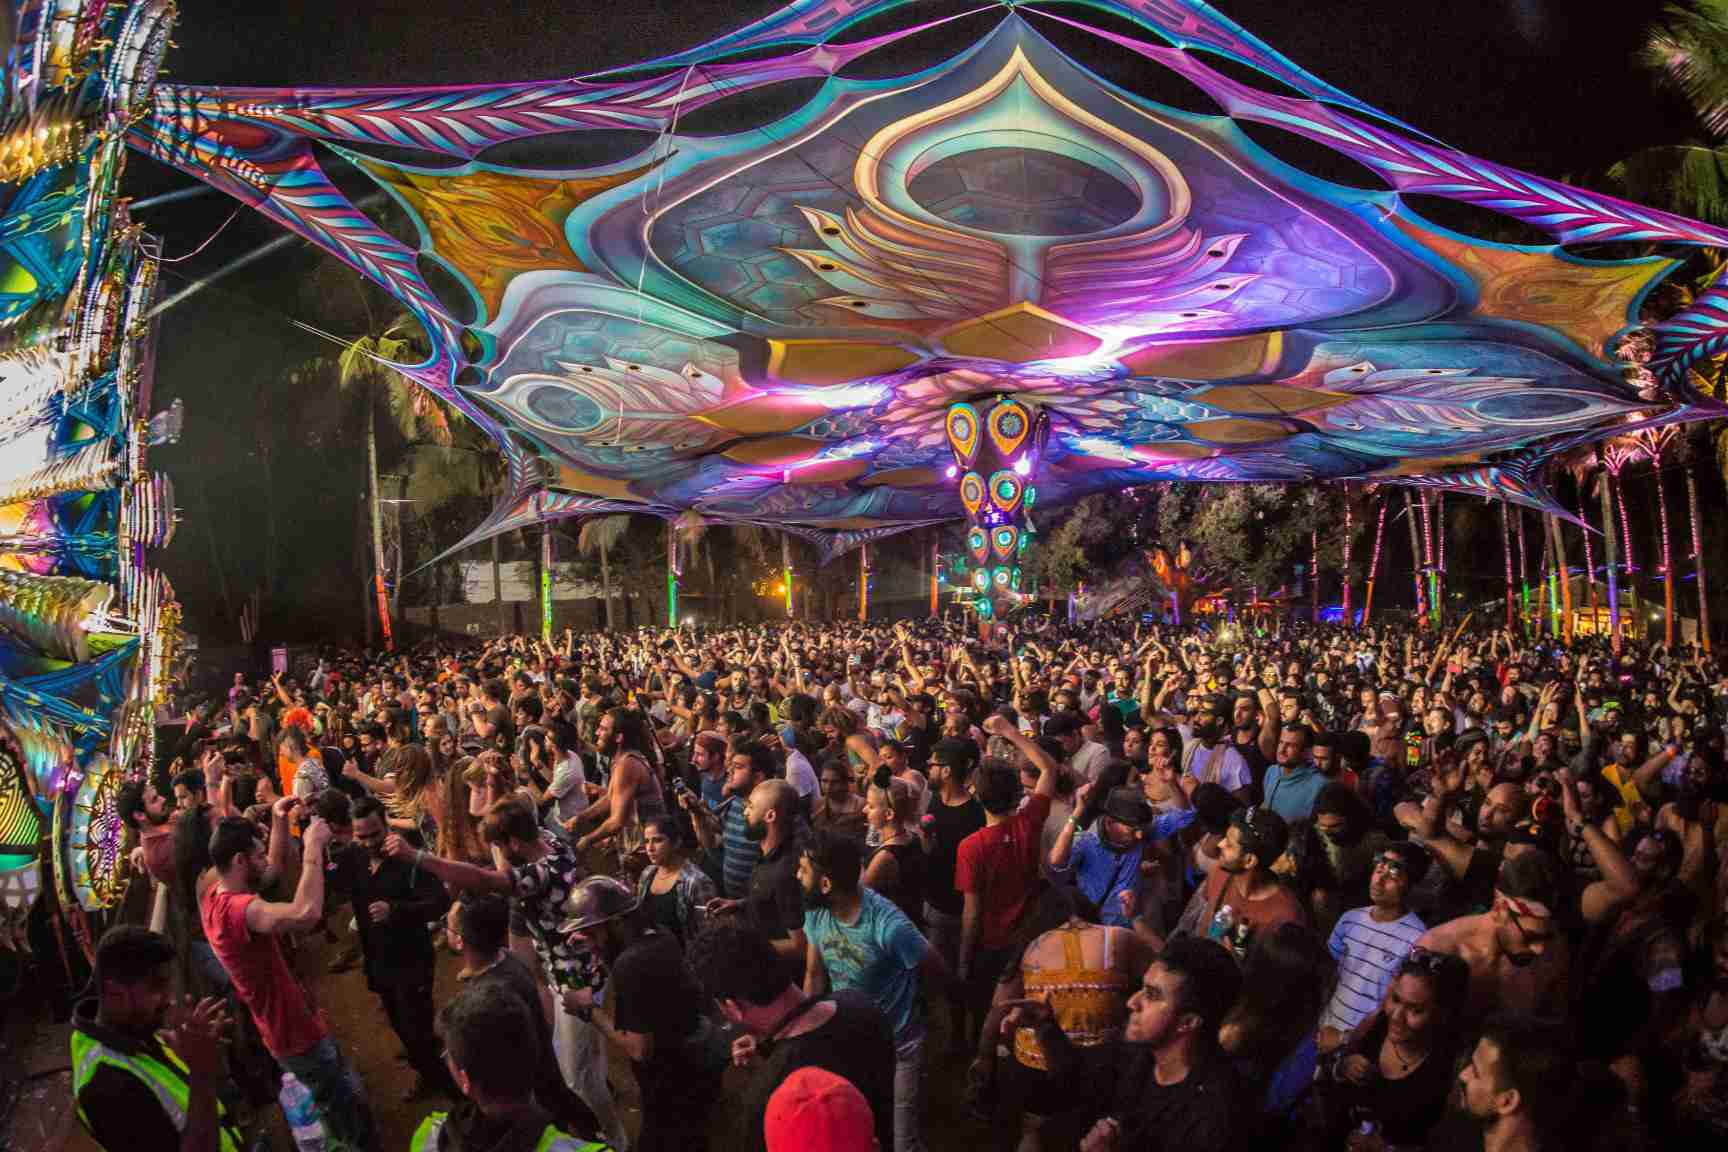 Nightlife in Goa: 14 Clubs, Bars & Beach Shacks to Party